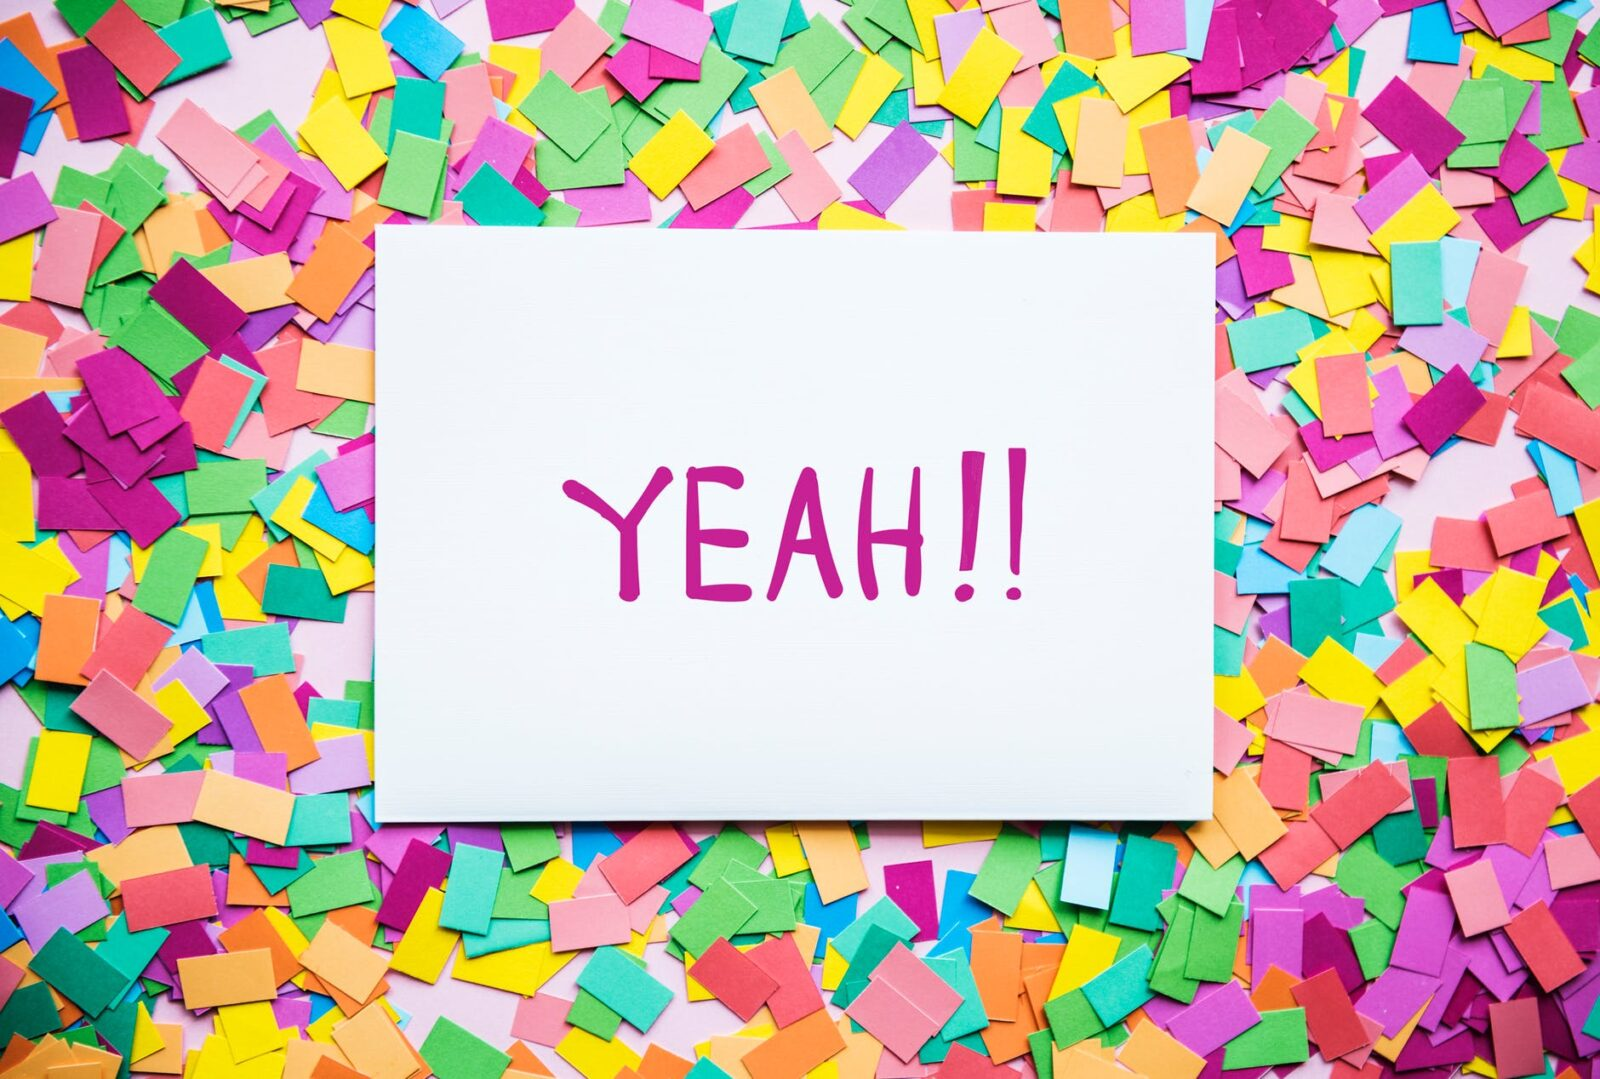 25 Ways to Celebrate Your Greatest Accomplishment